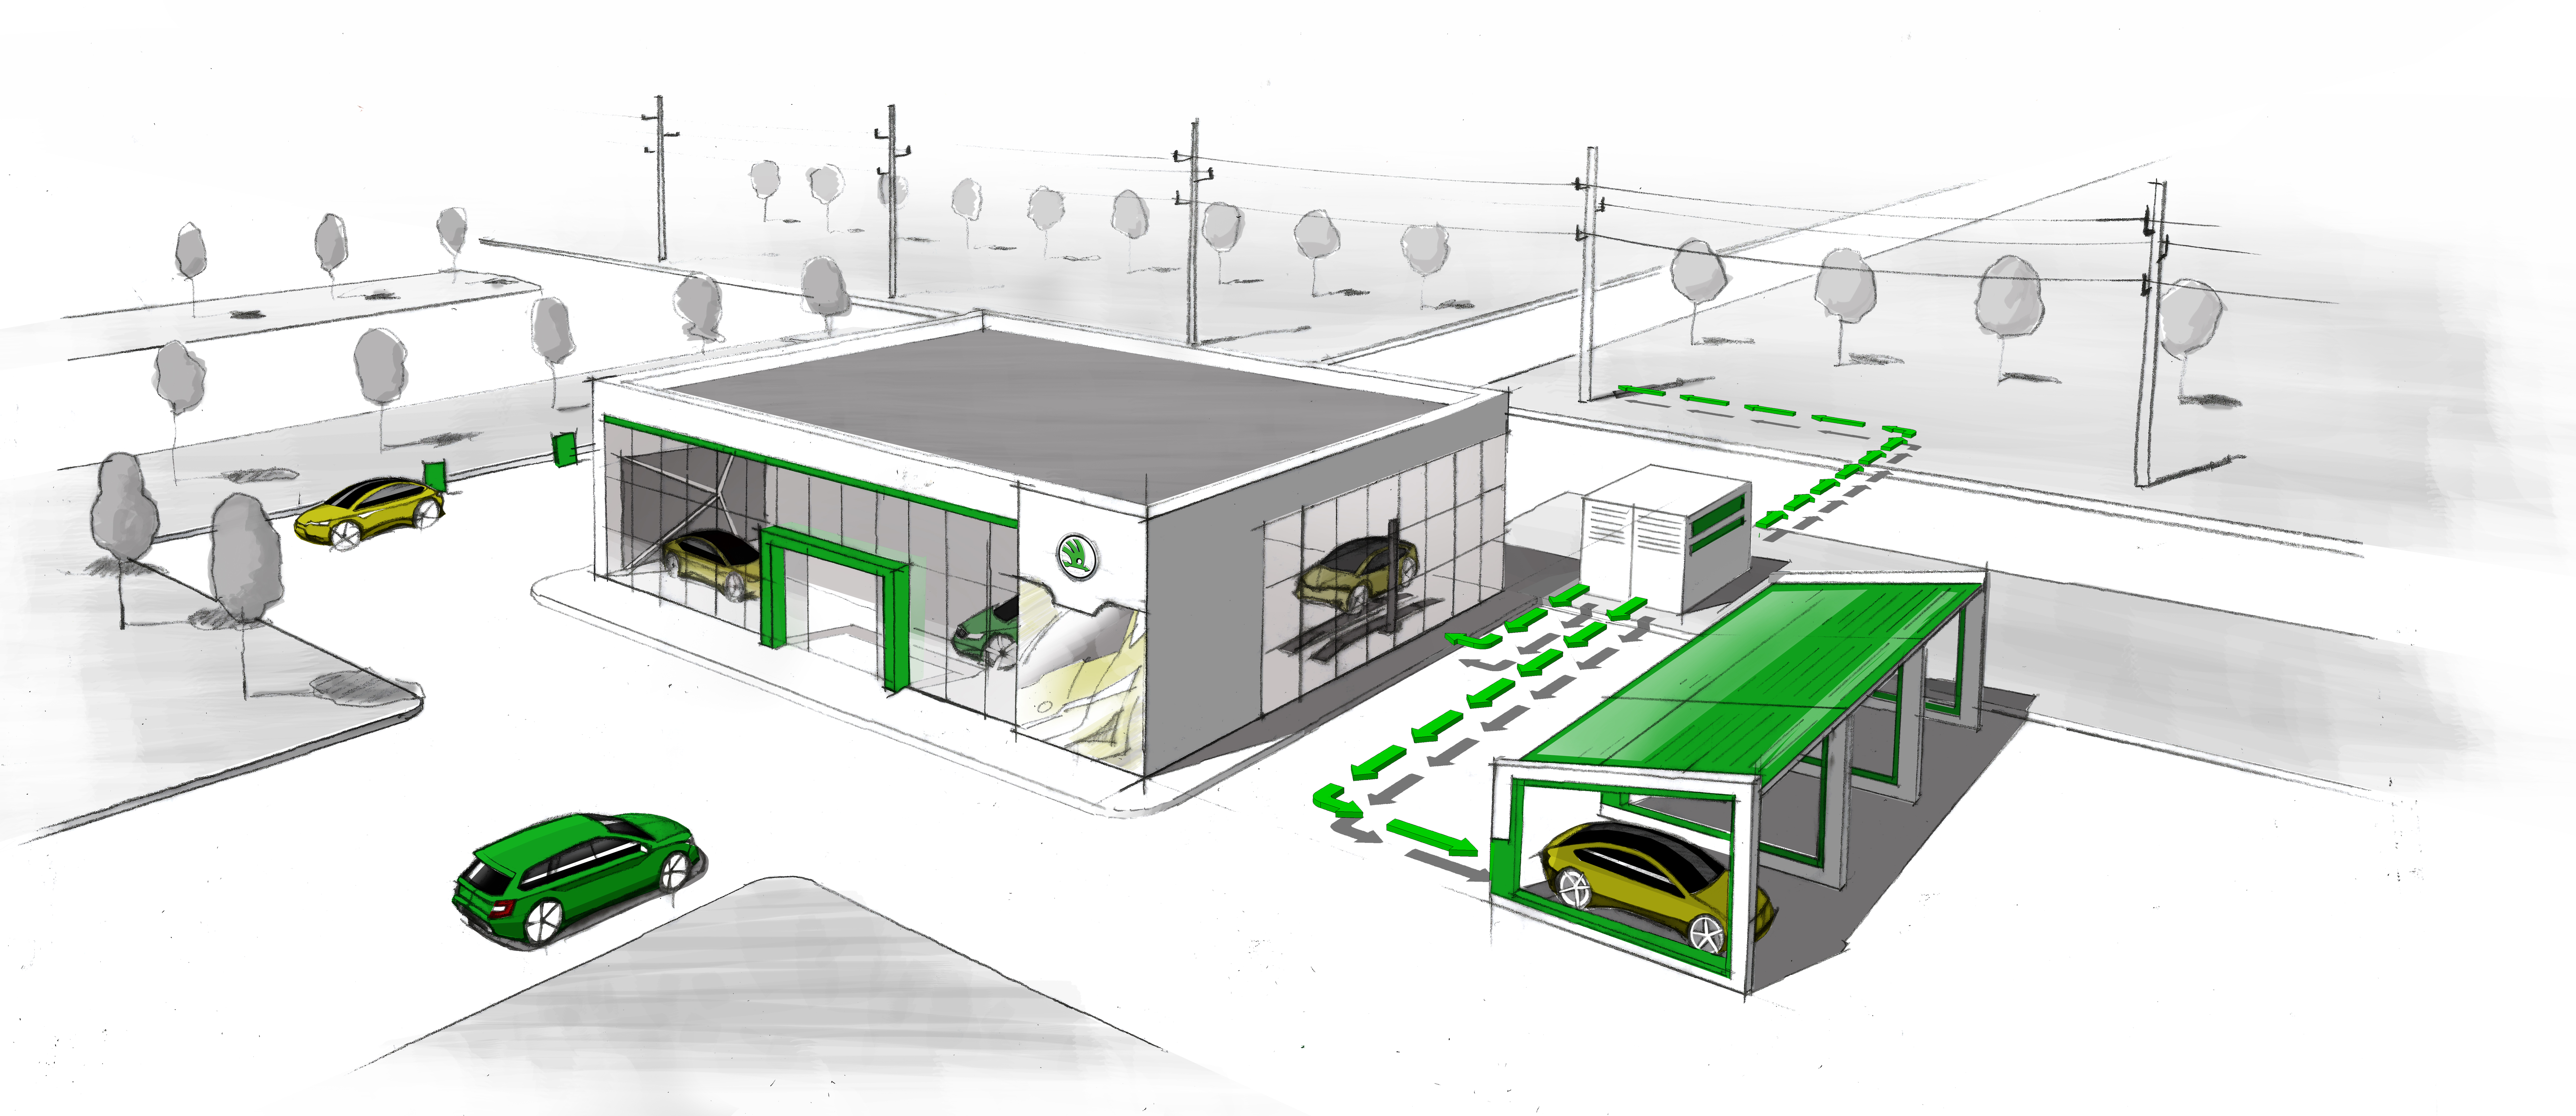 Second life cycle for batteries reduces their carbon footprint - Image 1